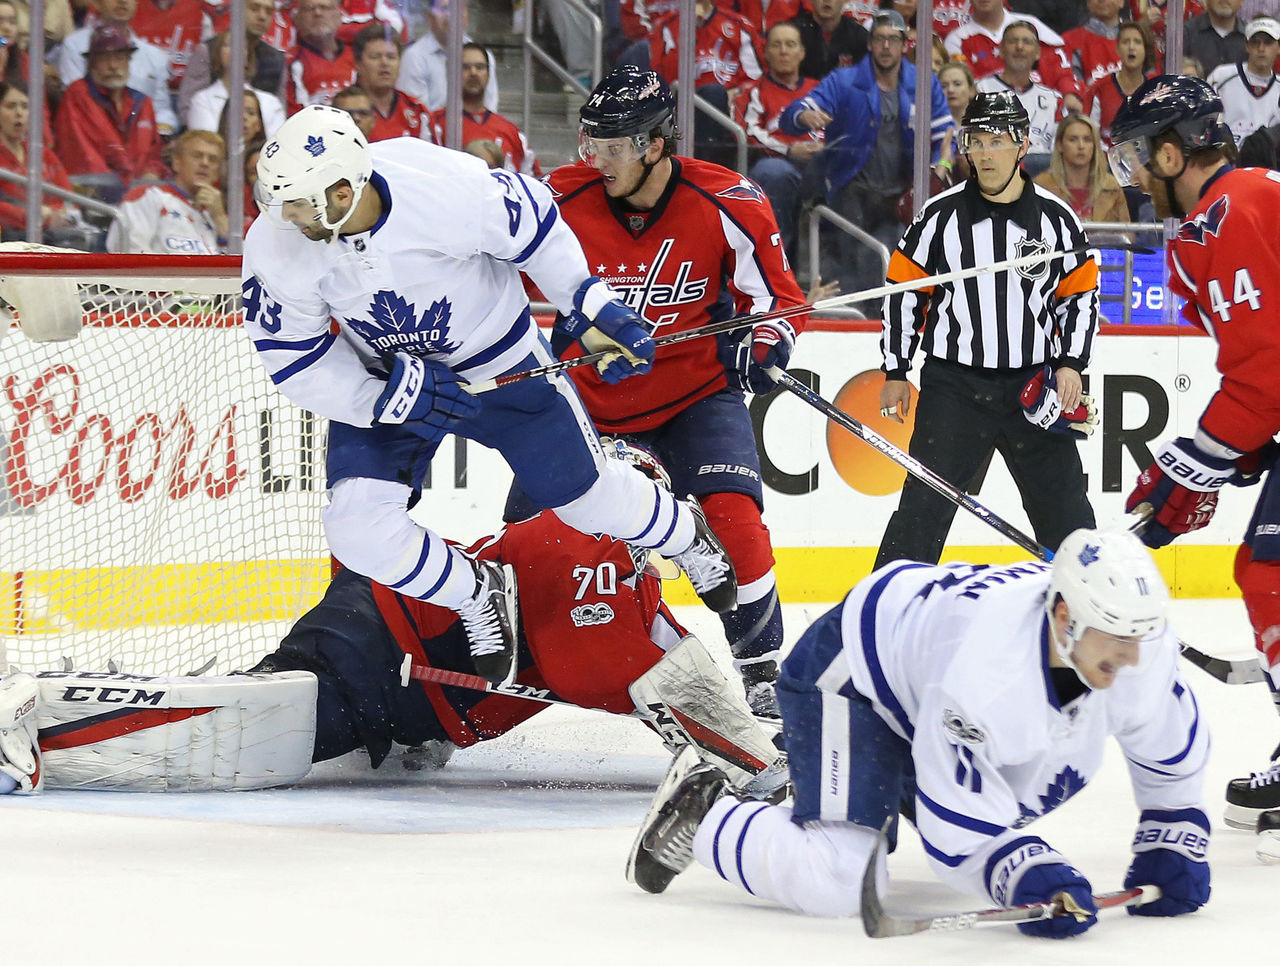 Cropped 2017 04 22t010644z 1847700197 nocid rtrmadp 3 nhl stanley cup playoffs toronto maple leafs at washington capitals